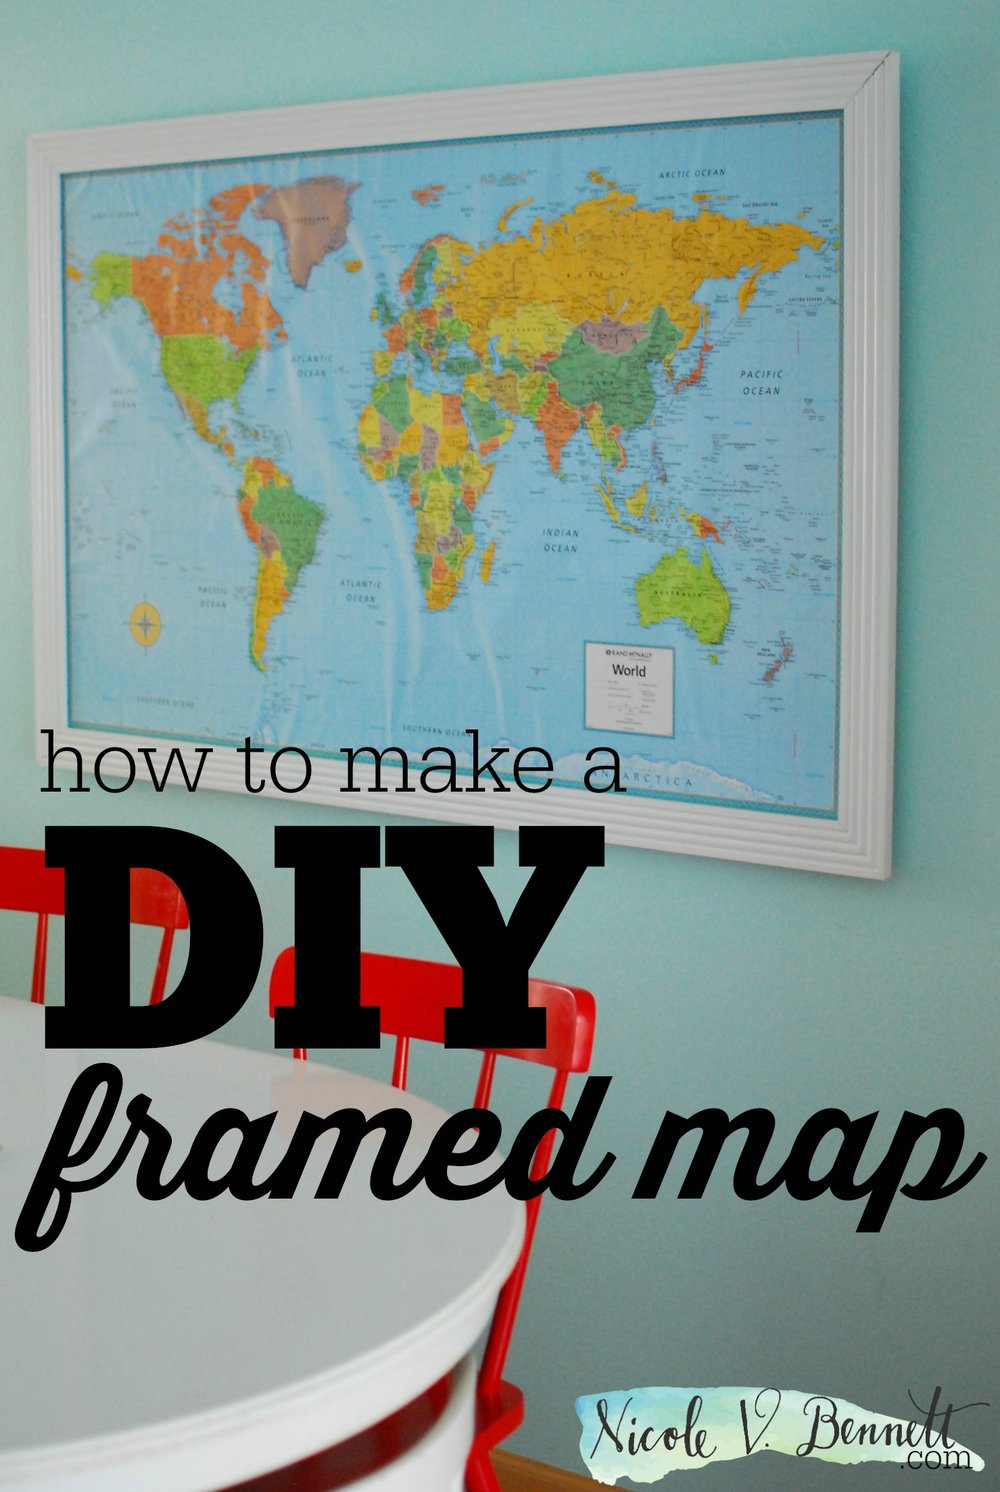 how-to-make-a-DIY-framed-map.jpg